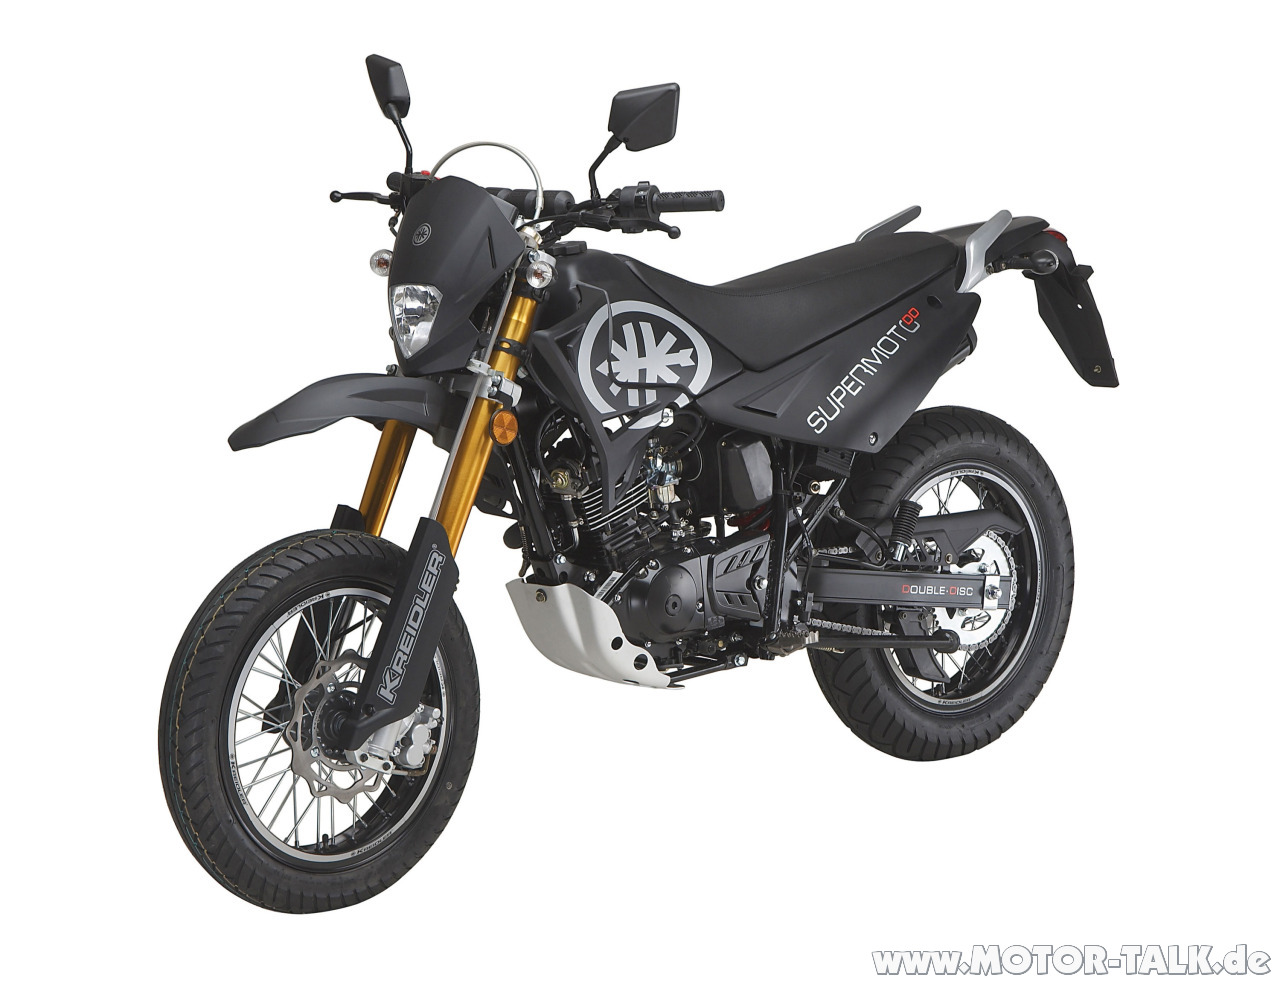 Kreidler 125 photo - 1